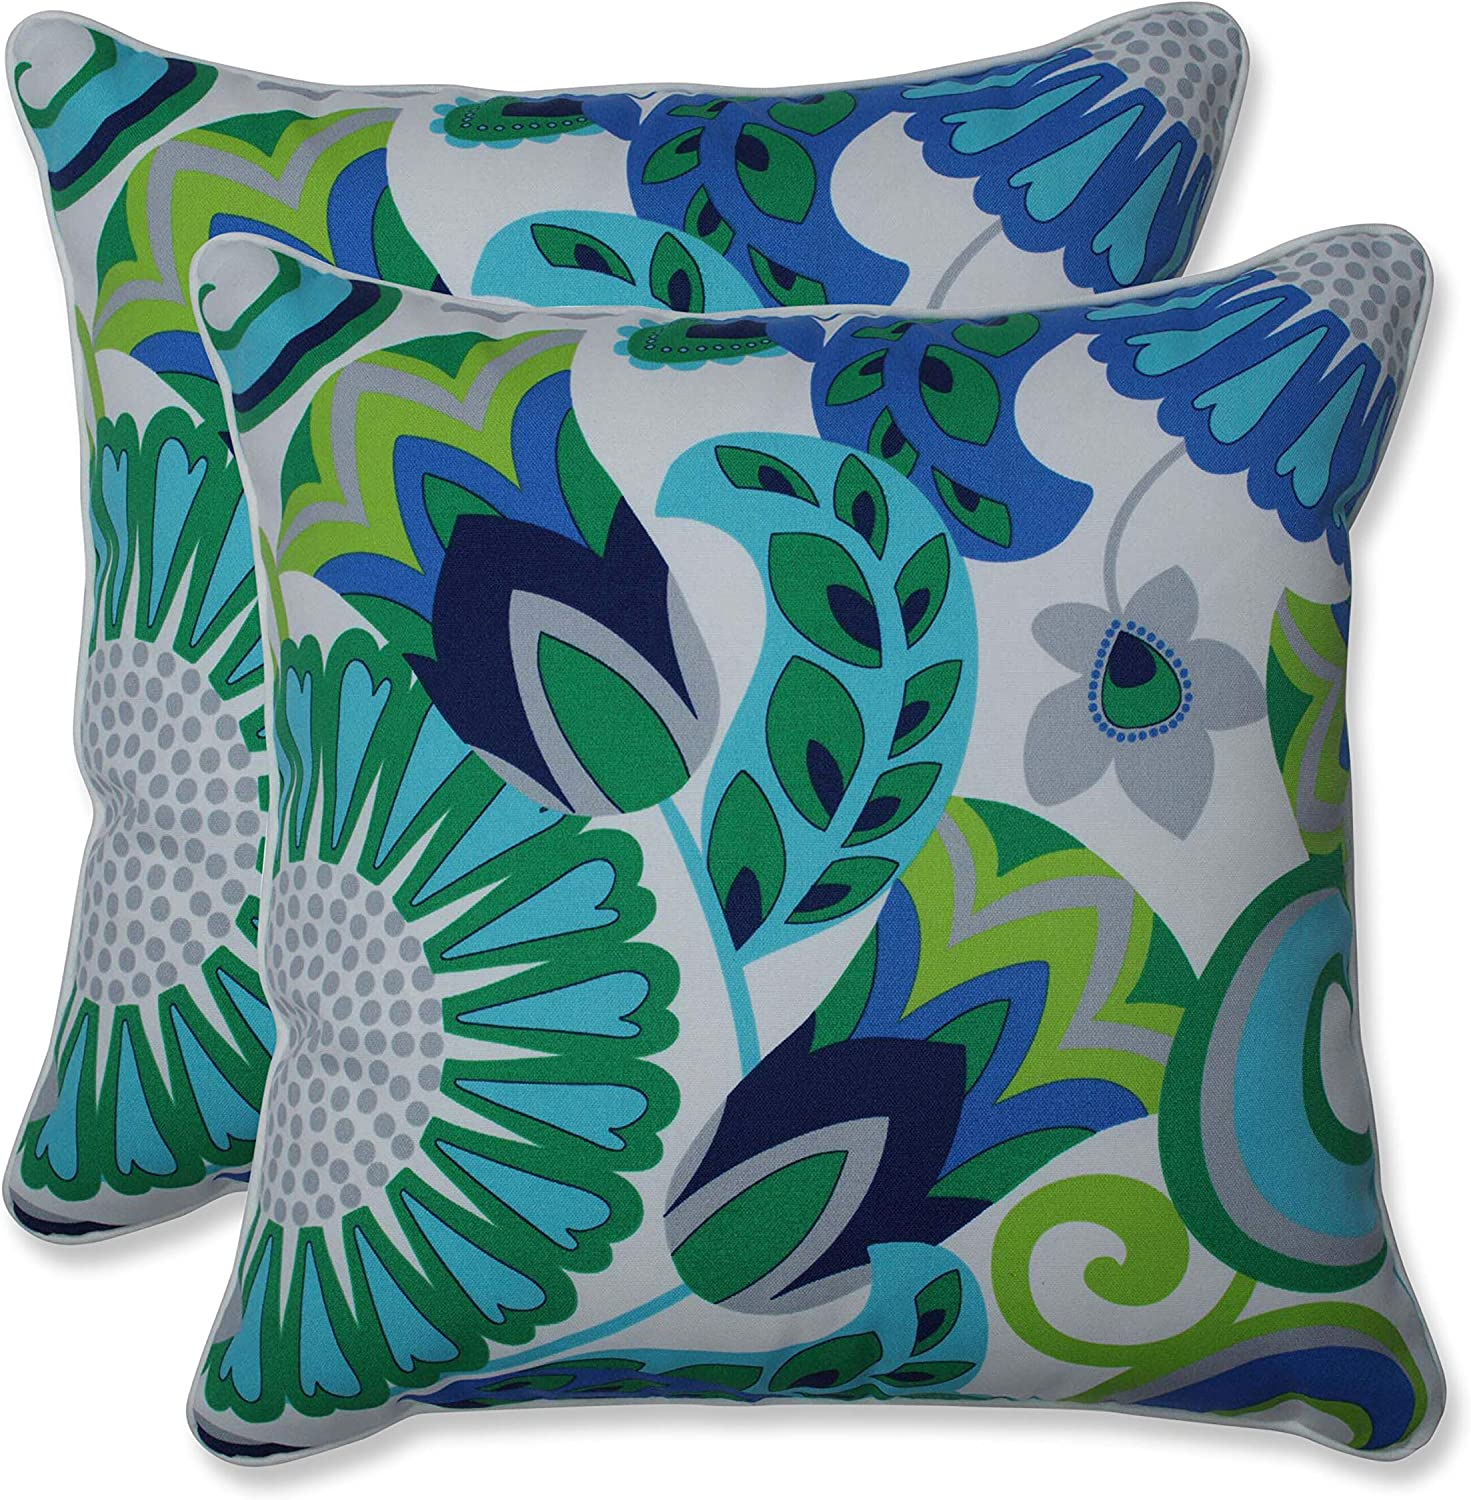 Amazon Com Pillow Perfect Outdoor Indoor Sophia Throw Pillows 18 5 X 18 5 Turquoise Green 2 Pack Home Kitchen